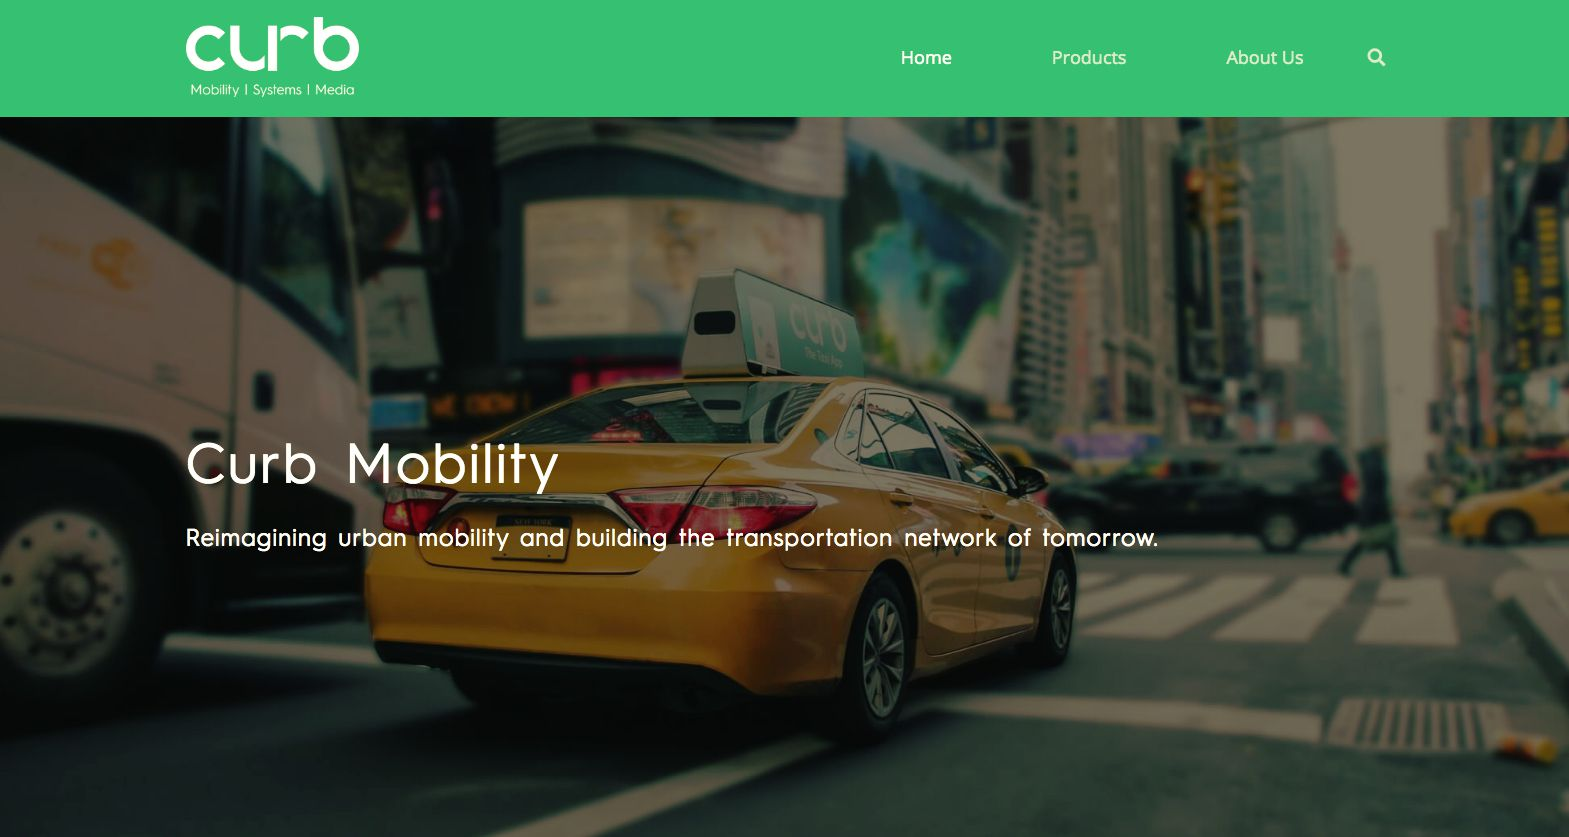 Curb taxi app home page